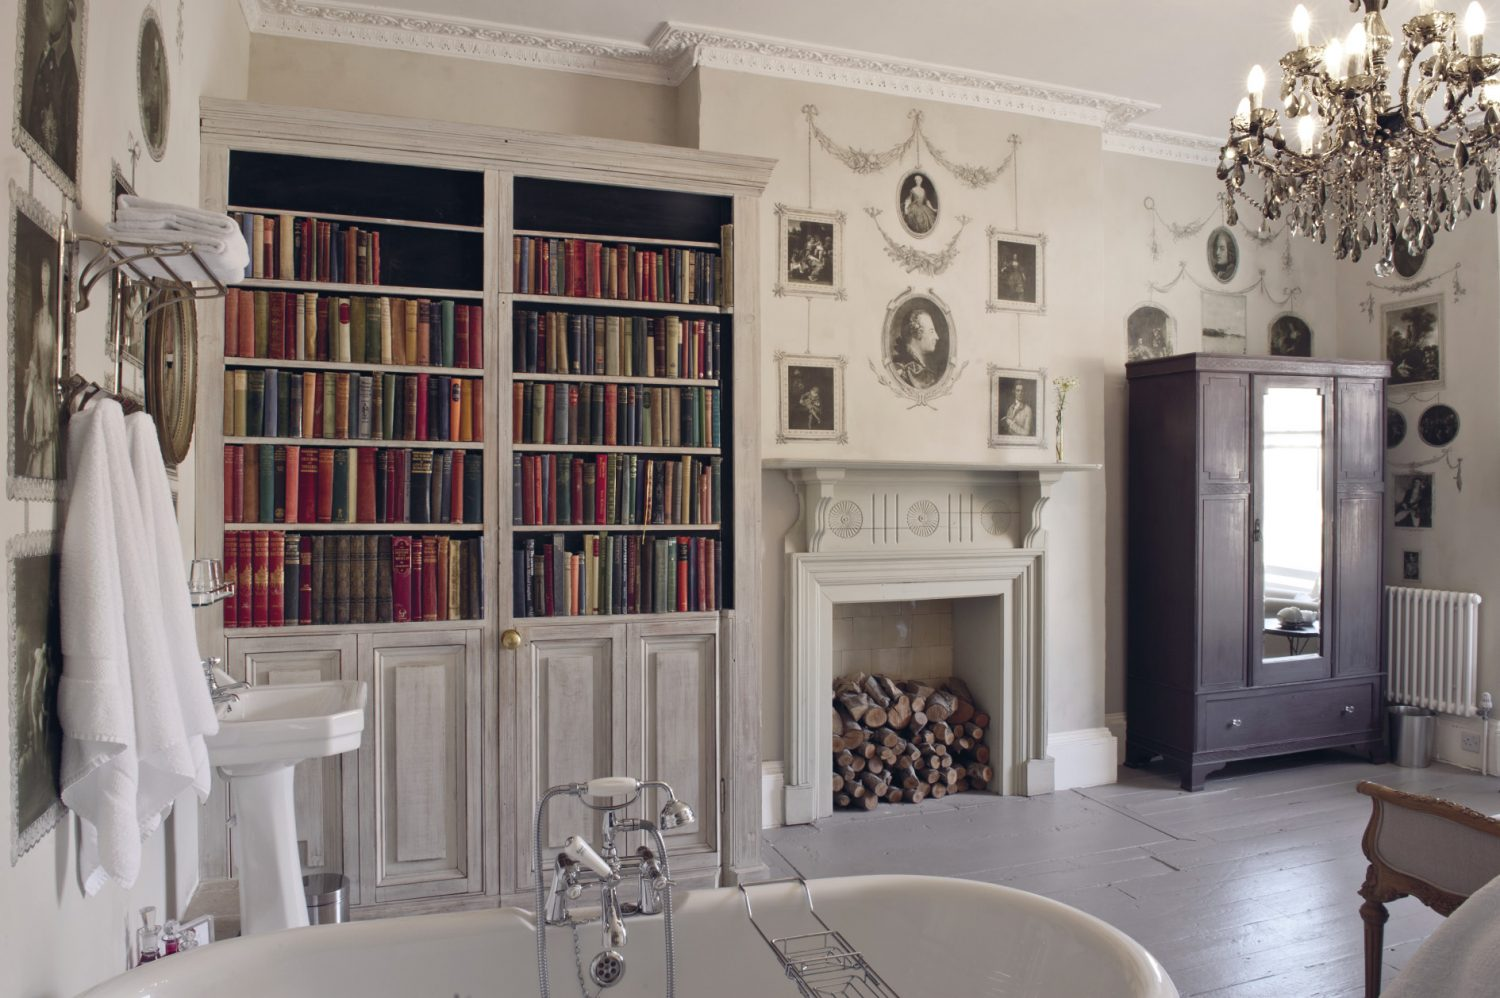 In order to cleverly disguise the loo, the spines of the books were cut off to furnish the doors of the faux bookcase, while the pages were all used to paper the bathroom walls